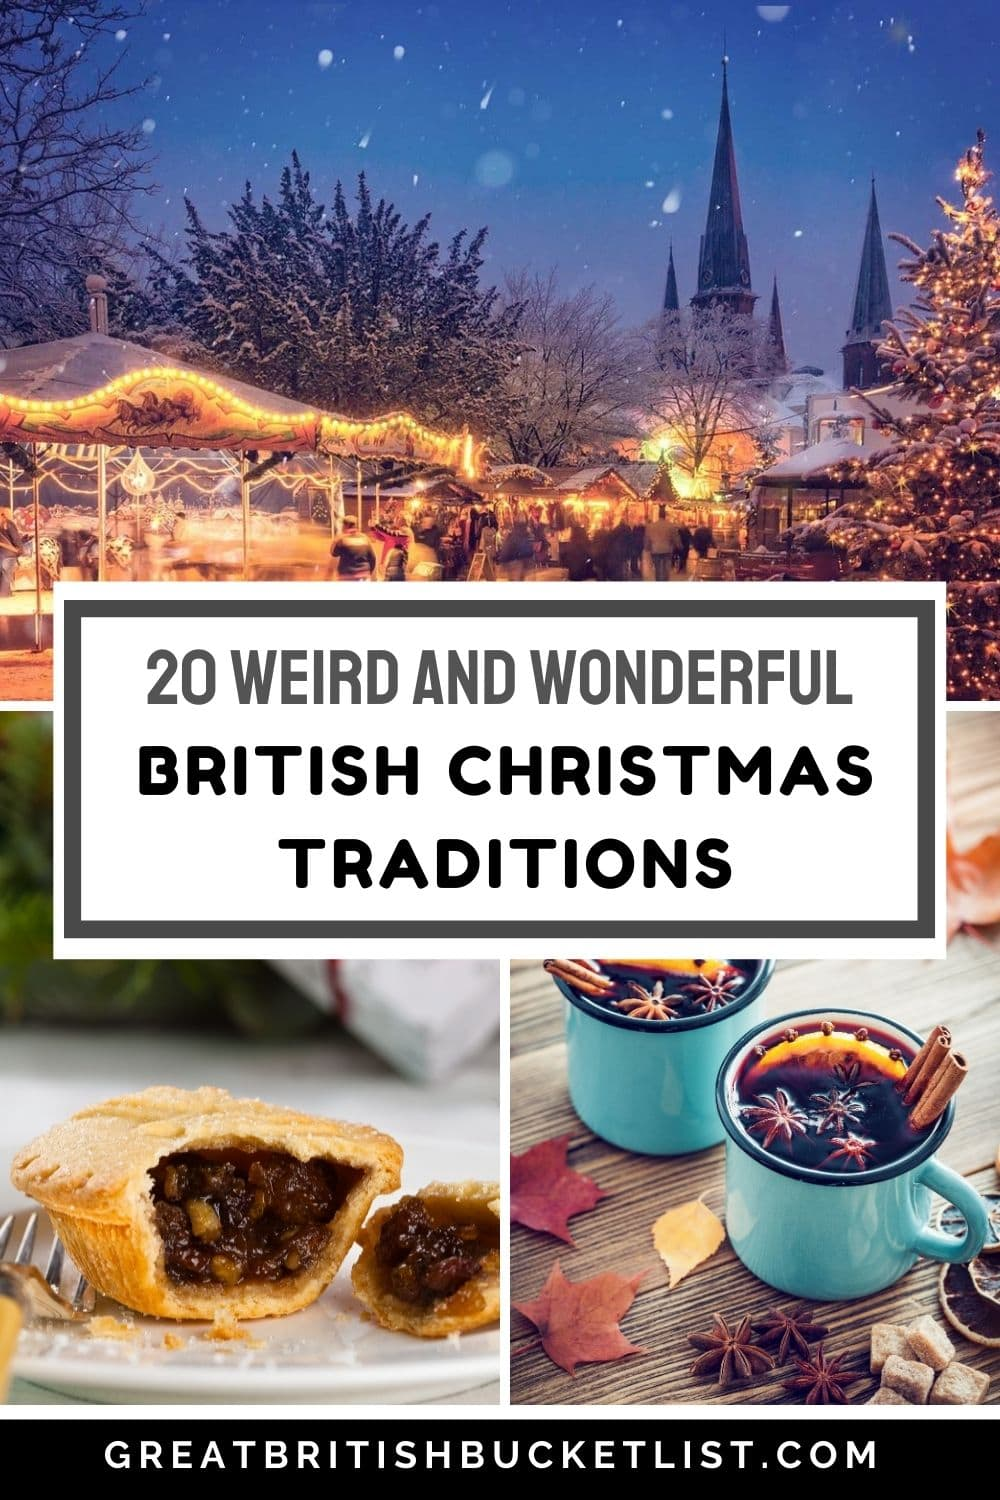 20 Weird and Wonderful British Christmas Traditions